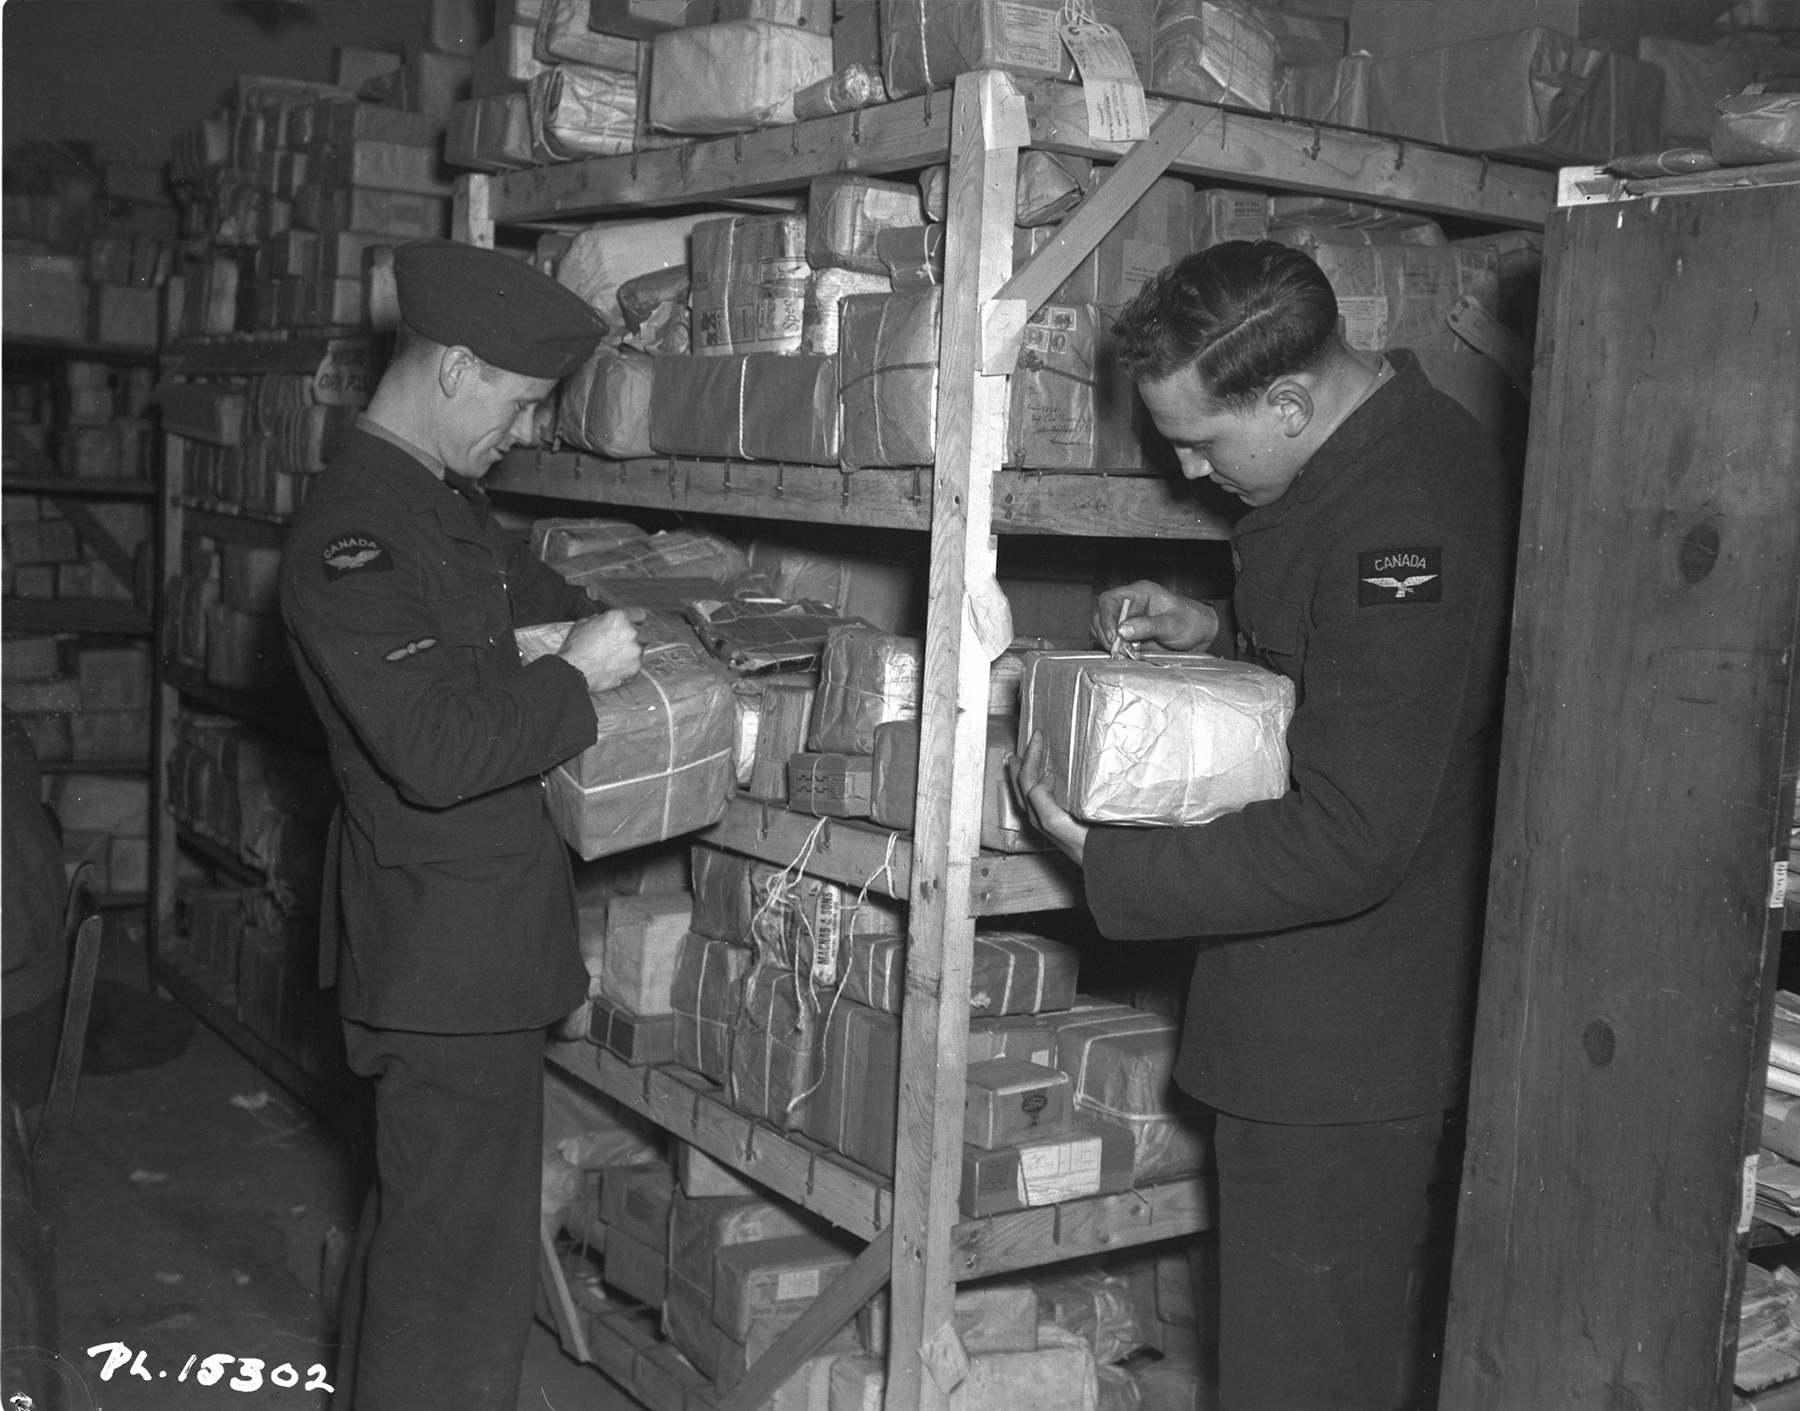 On January 14, 1943, Leading Aircraftman J.A. McGuire (left) and Aircraftman First Class F.R. Dane add two more misaddressed packages to the shelves at the Base Post Office in the Midlands area of England. This is what happens to packages when they are incorrectly addressed or when their intended recipients do not submit change-of-address cards: they are held until the correct address known. PHOTO: DND Archives